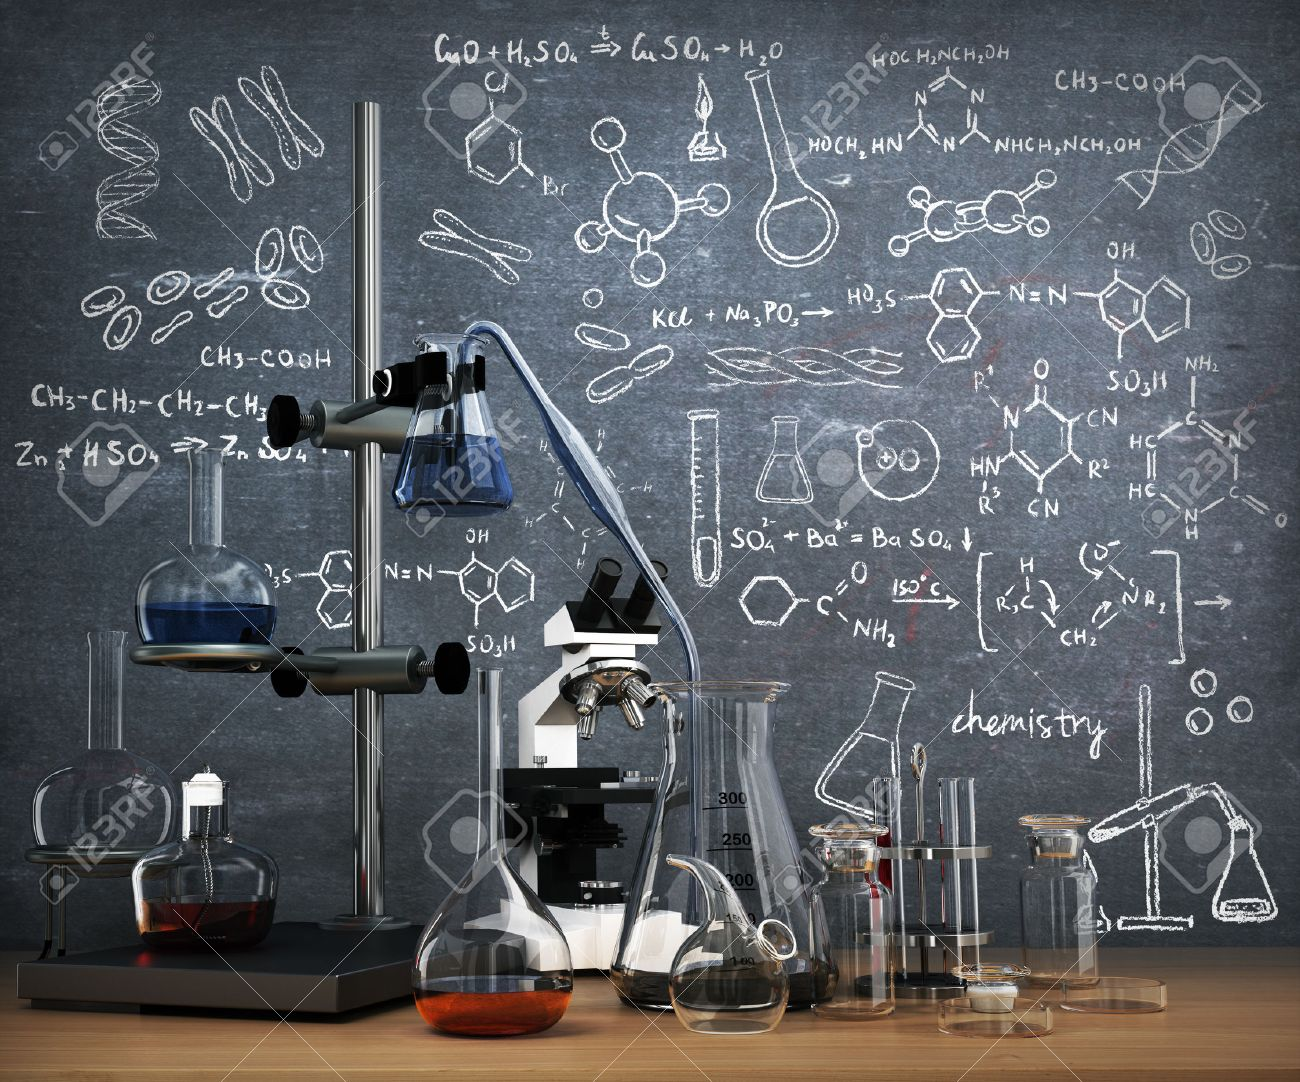 Chemistry Laboratory Concept Chemical Test Tubes And Objects On The Table With Draw